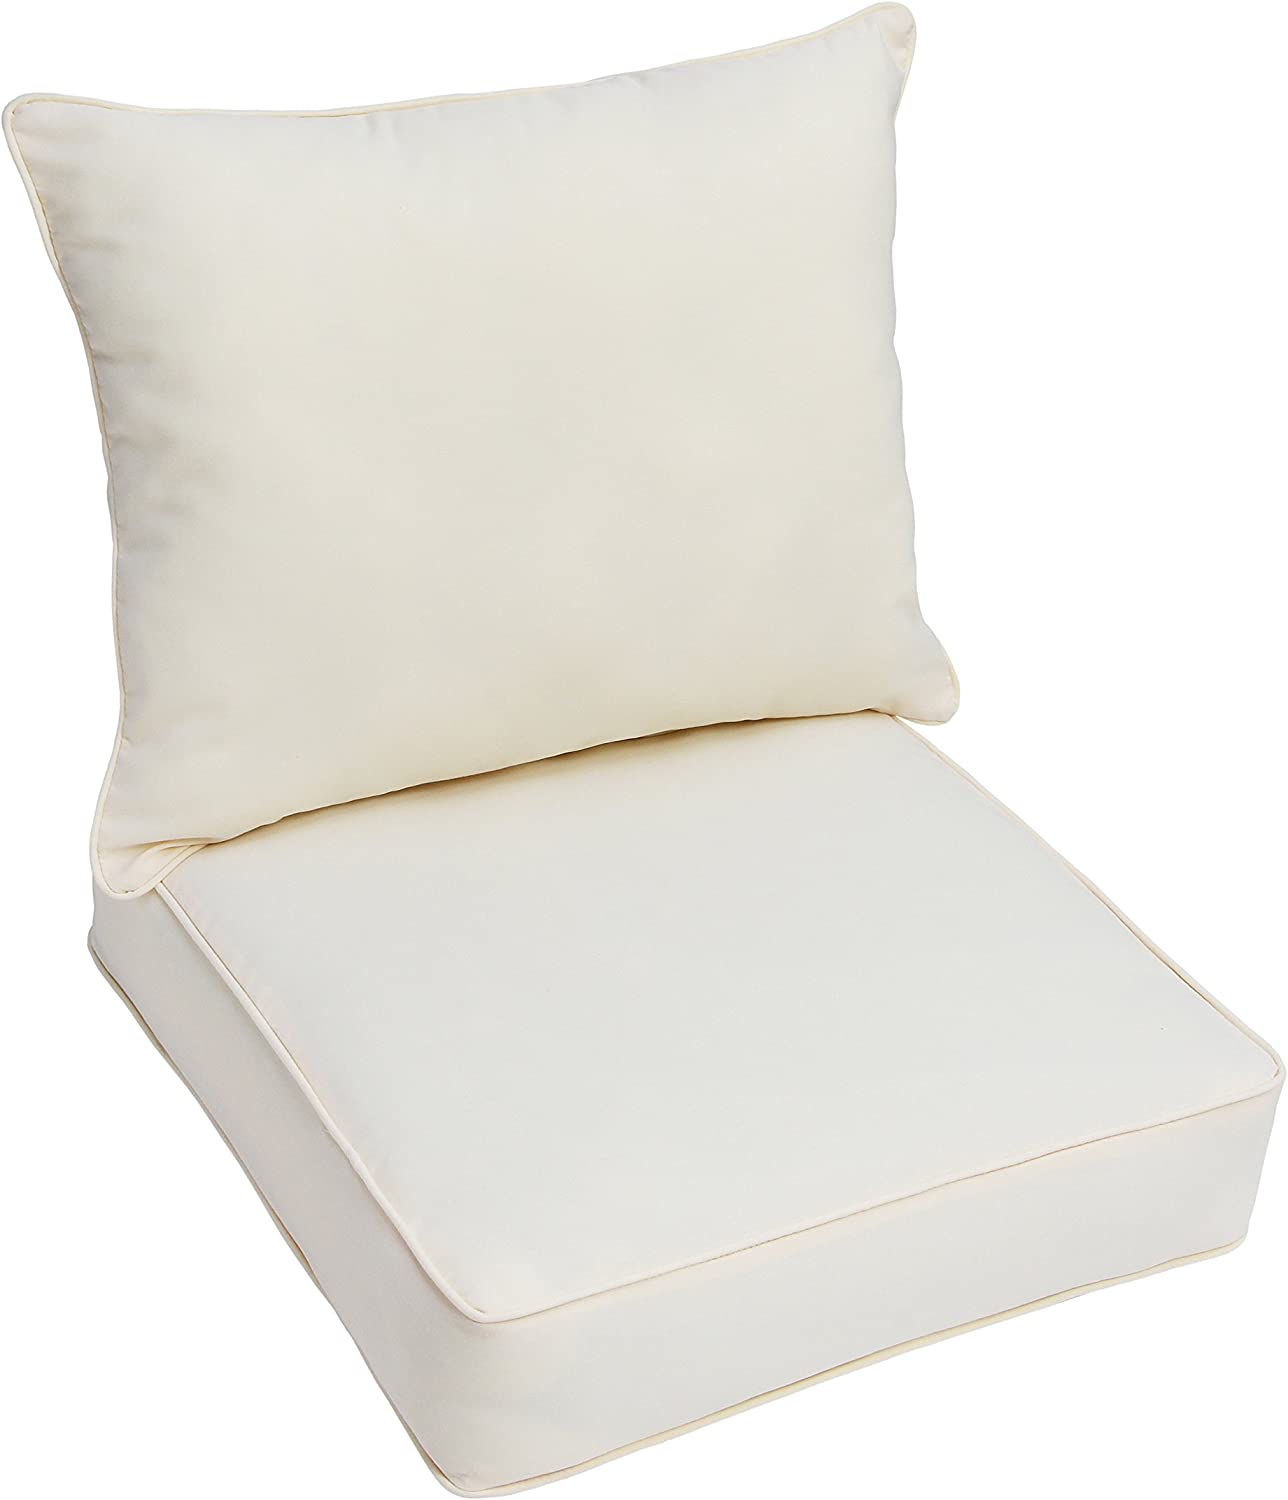 Mozaic AZPC4313 Indoor or Outdoor Deep Seating Cushion & Pillow Set with Corded Edges, 23 in W x 25 in D, Fresco Natural